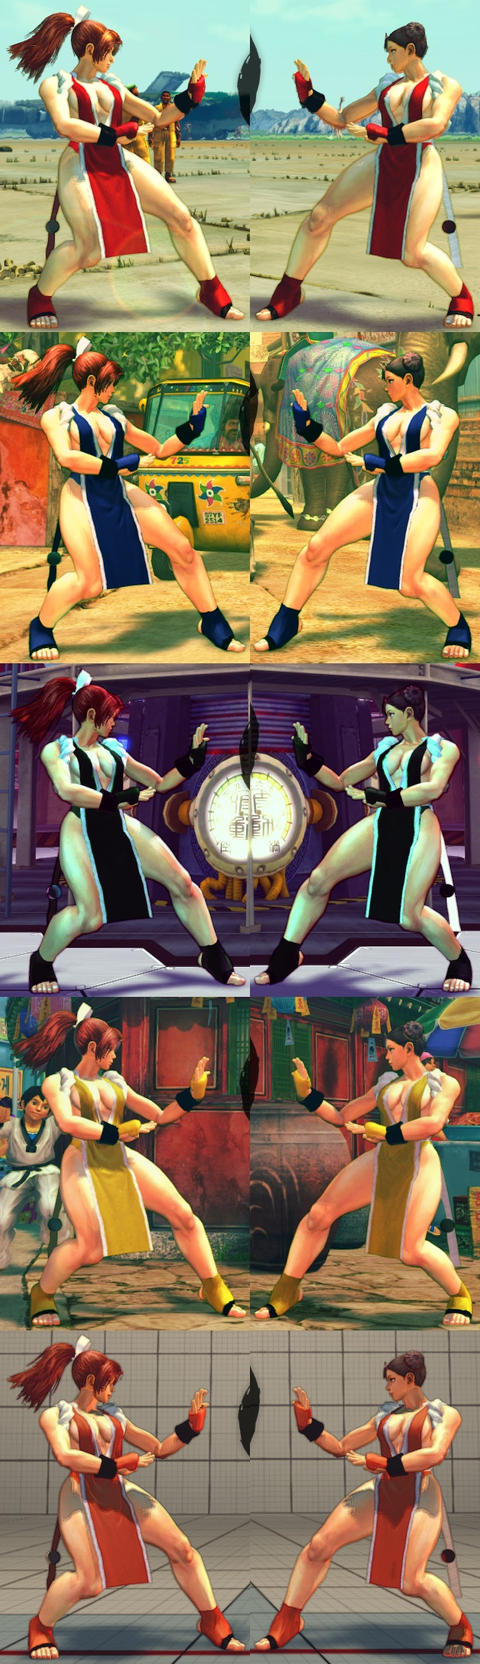 USF4 Mod - Chun Li: Mai Shiranui Cosplay (Socks) by Segadordelinks